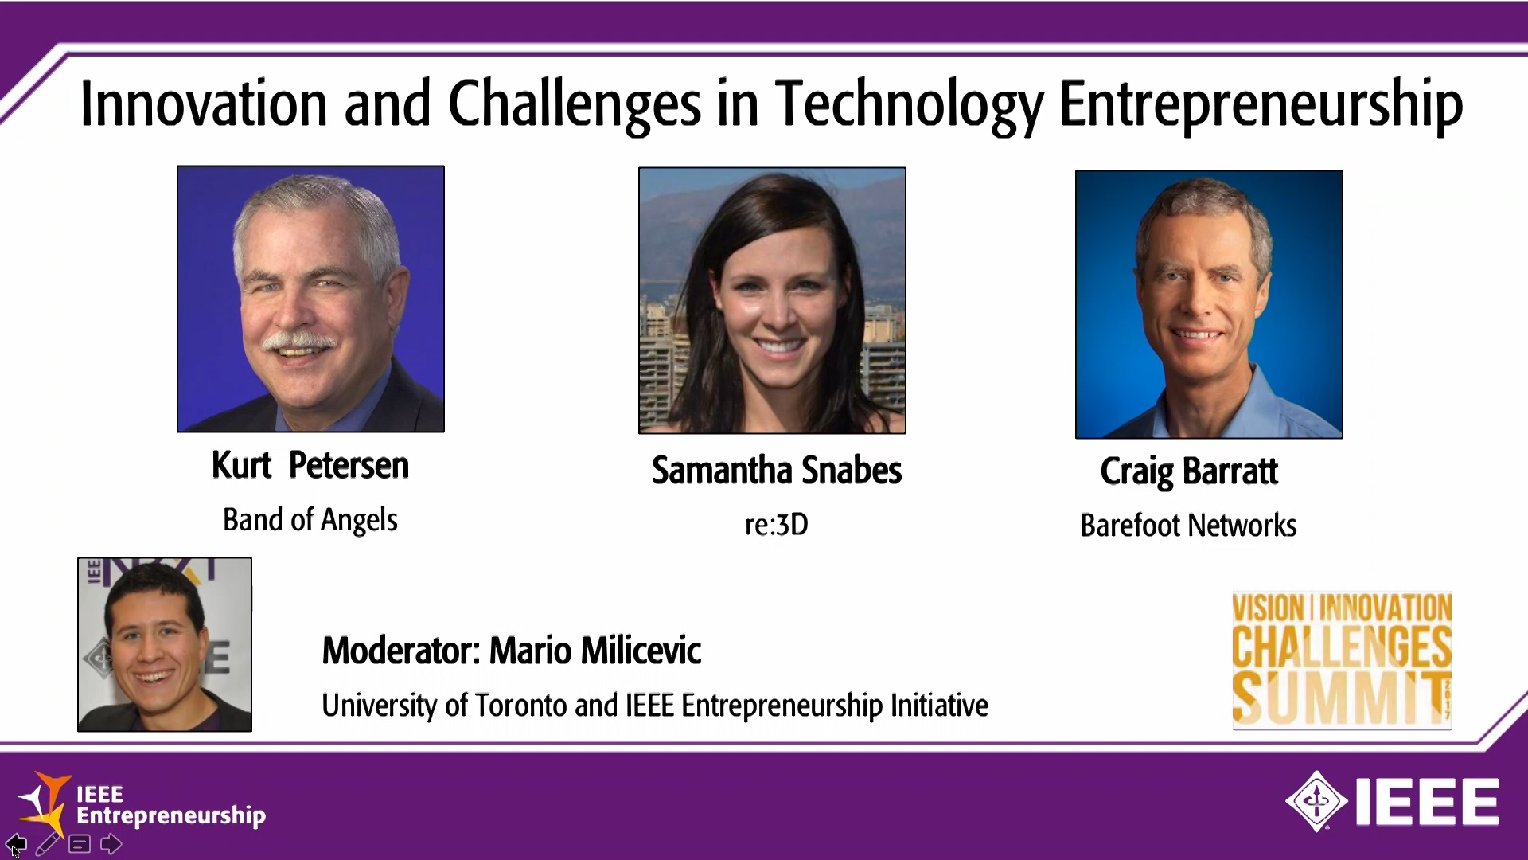 Entrepreneurship Panel - Innovation and Challenges in Technology Entrepreneurship (2017 VIC Summit)